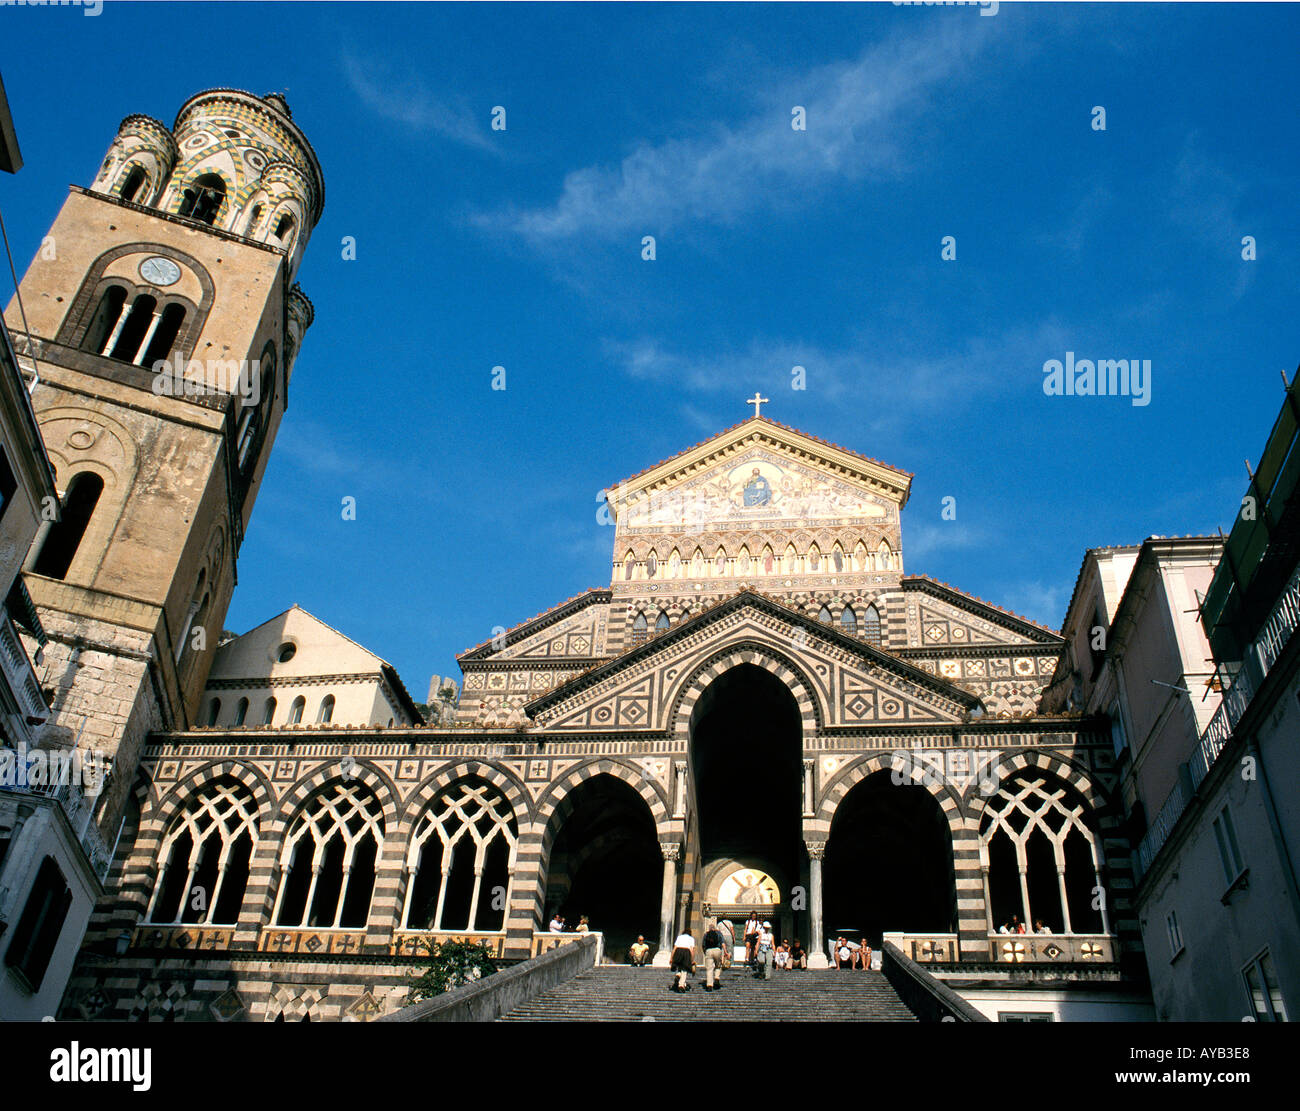 Amalfi. The 9th Century Cathedral . Italy - Stock Image